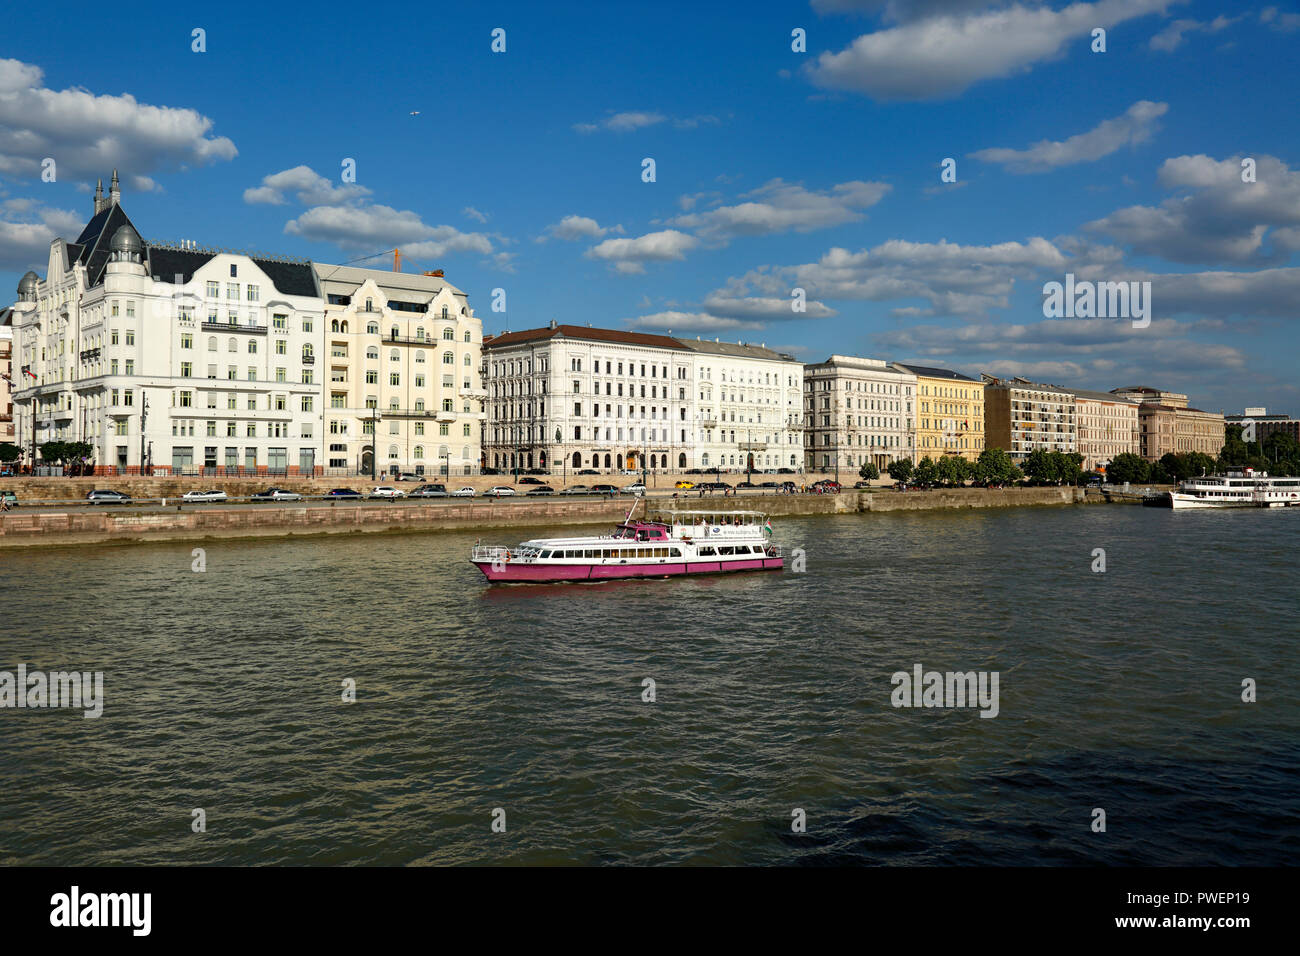 Hungary, Central Hungary, Budapest, Danube, Capital City, Danube bank of Pest, Danube landscape, business houses and residential buildings, excursion ship on the Danube, river navigation, UNESCO World Heritage Site Stock Photo